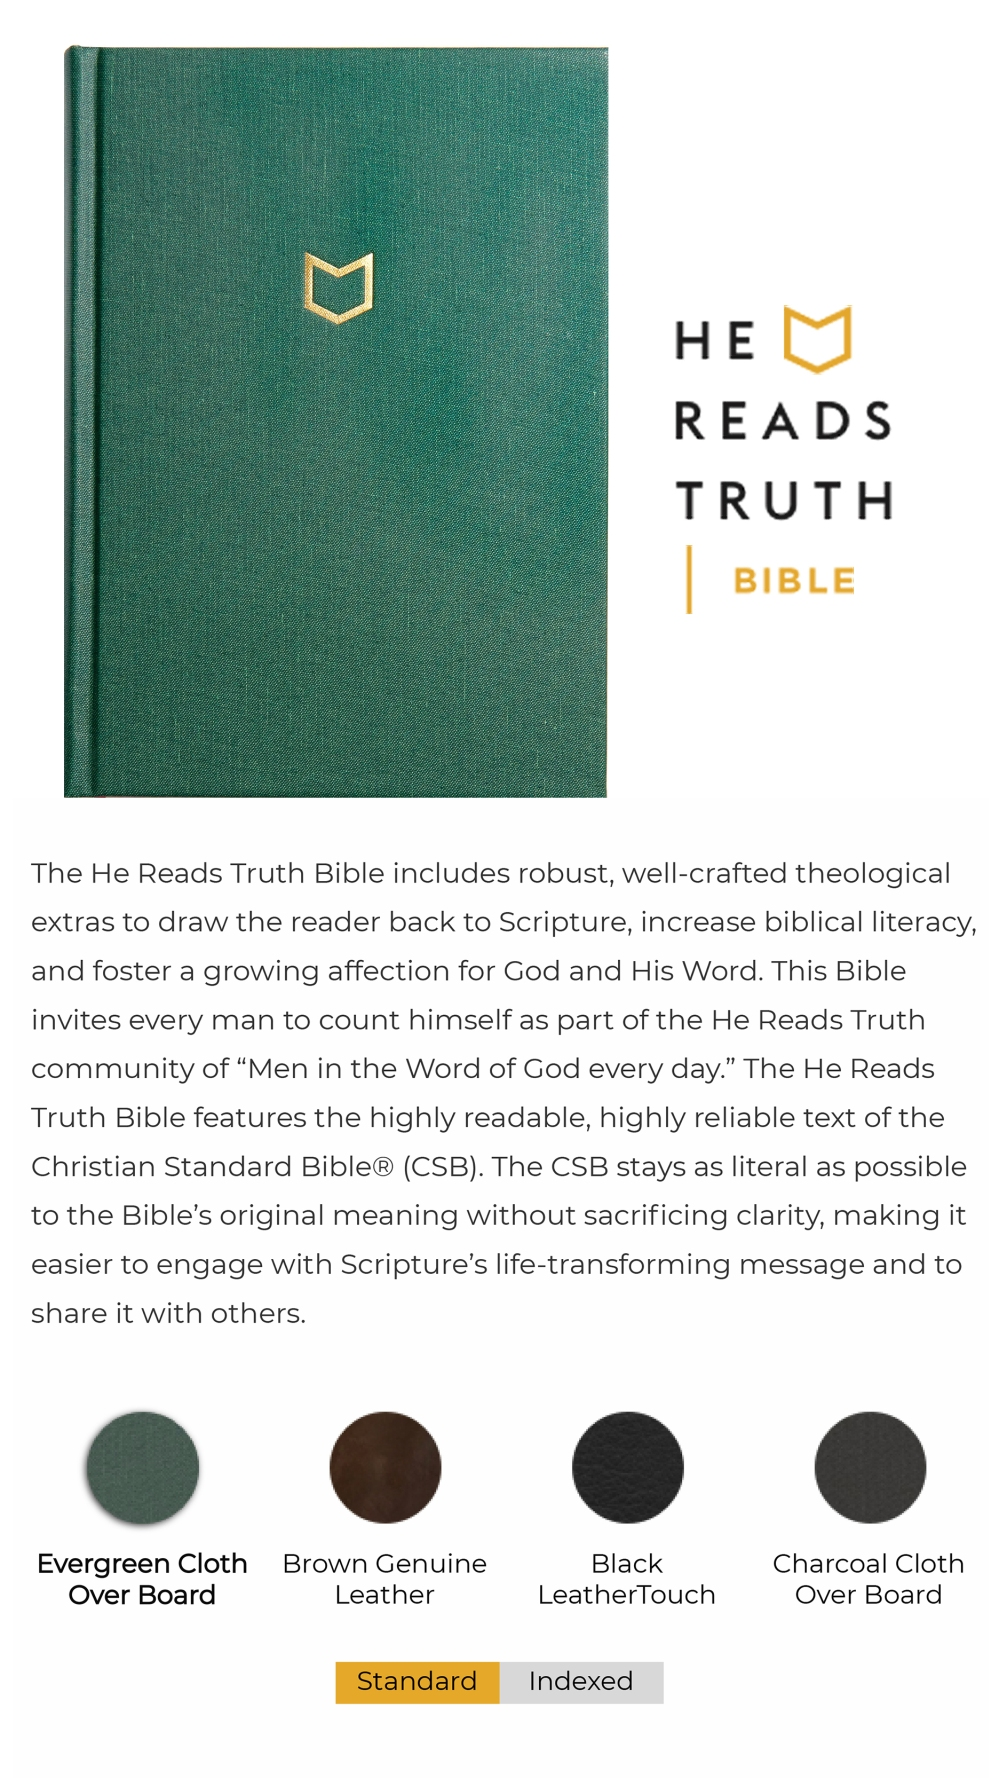 He Reads Truth Bible_About